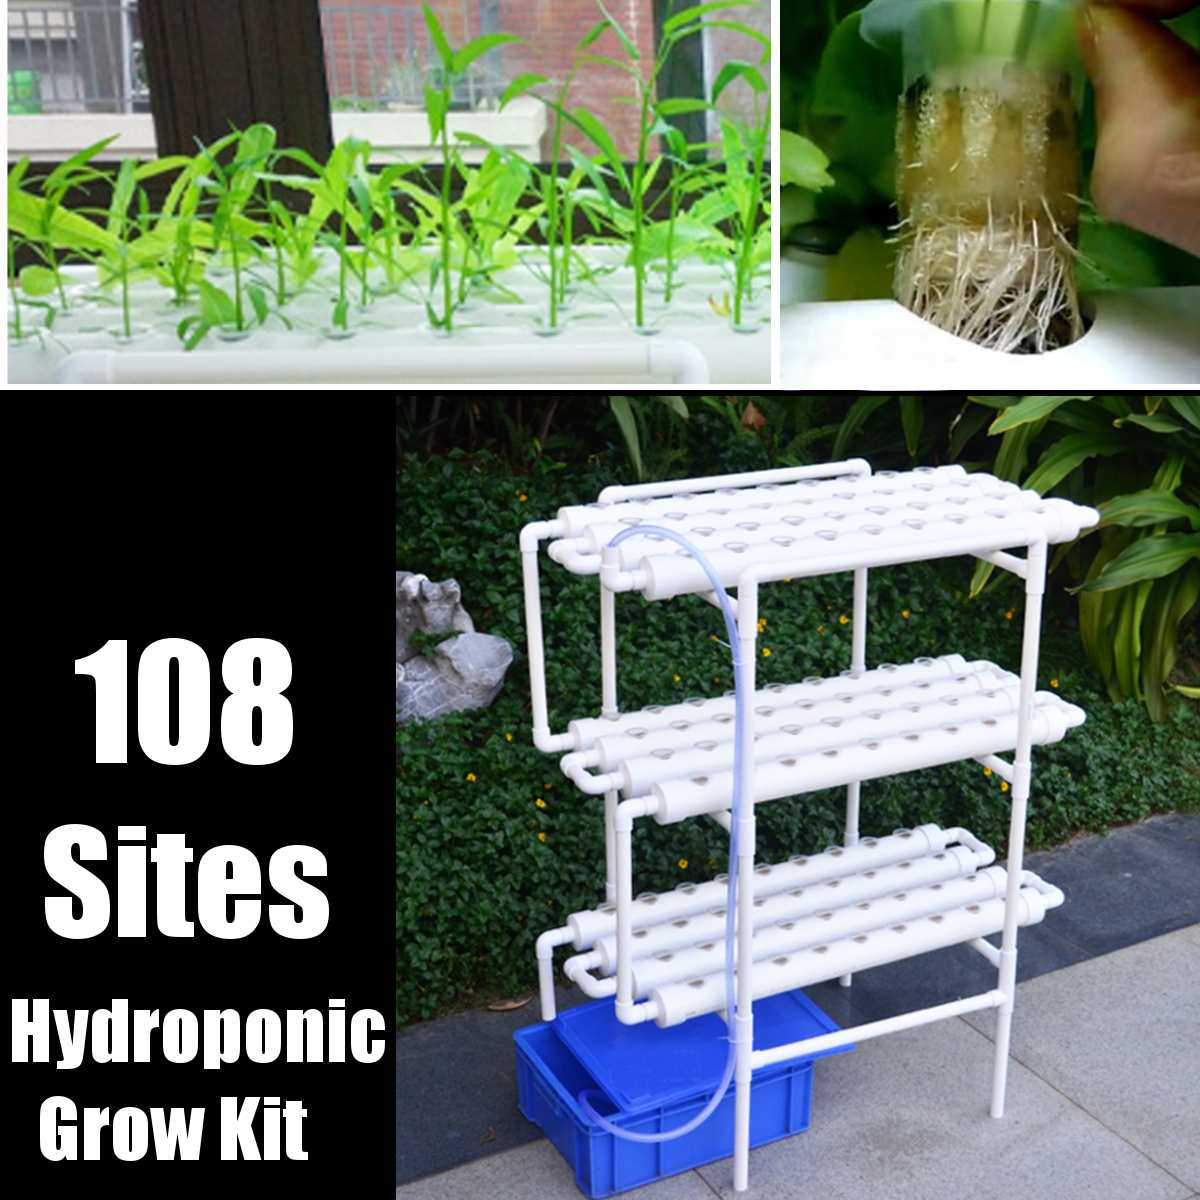 108-Holes Plant-Hydroponic-System Nursery-Pots Grow-Kit Soilless-Cultivation Planting title=